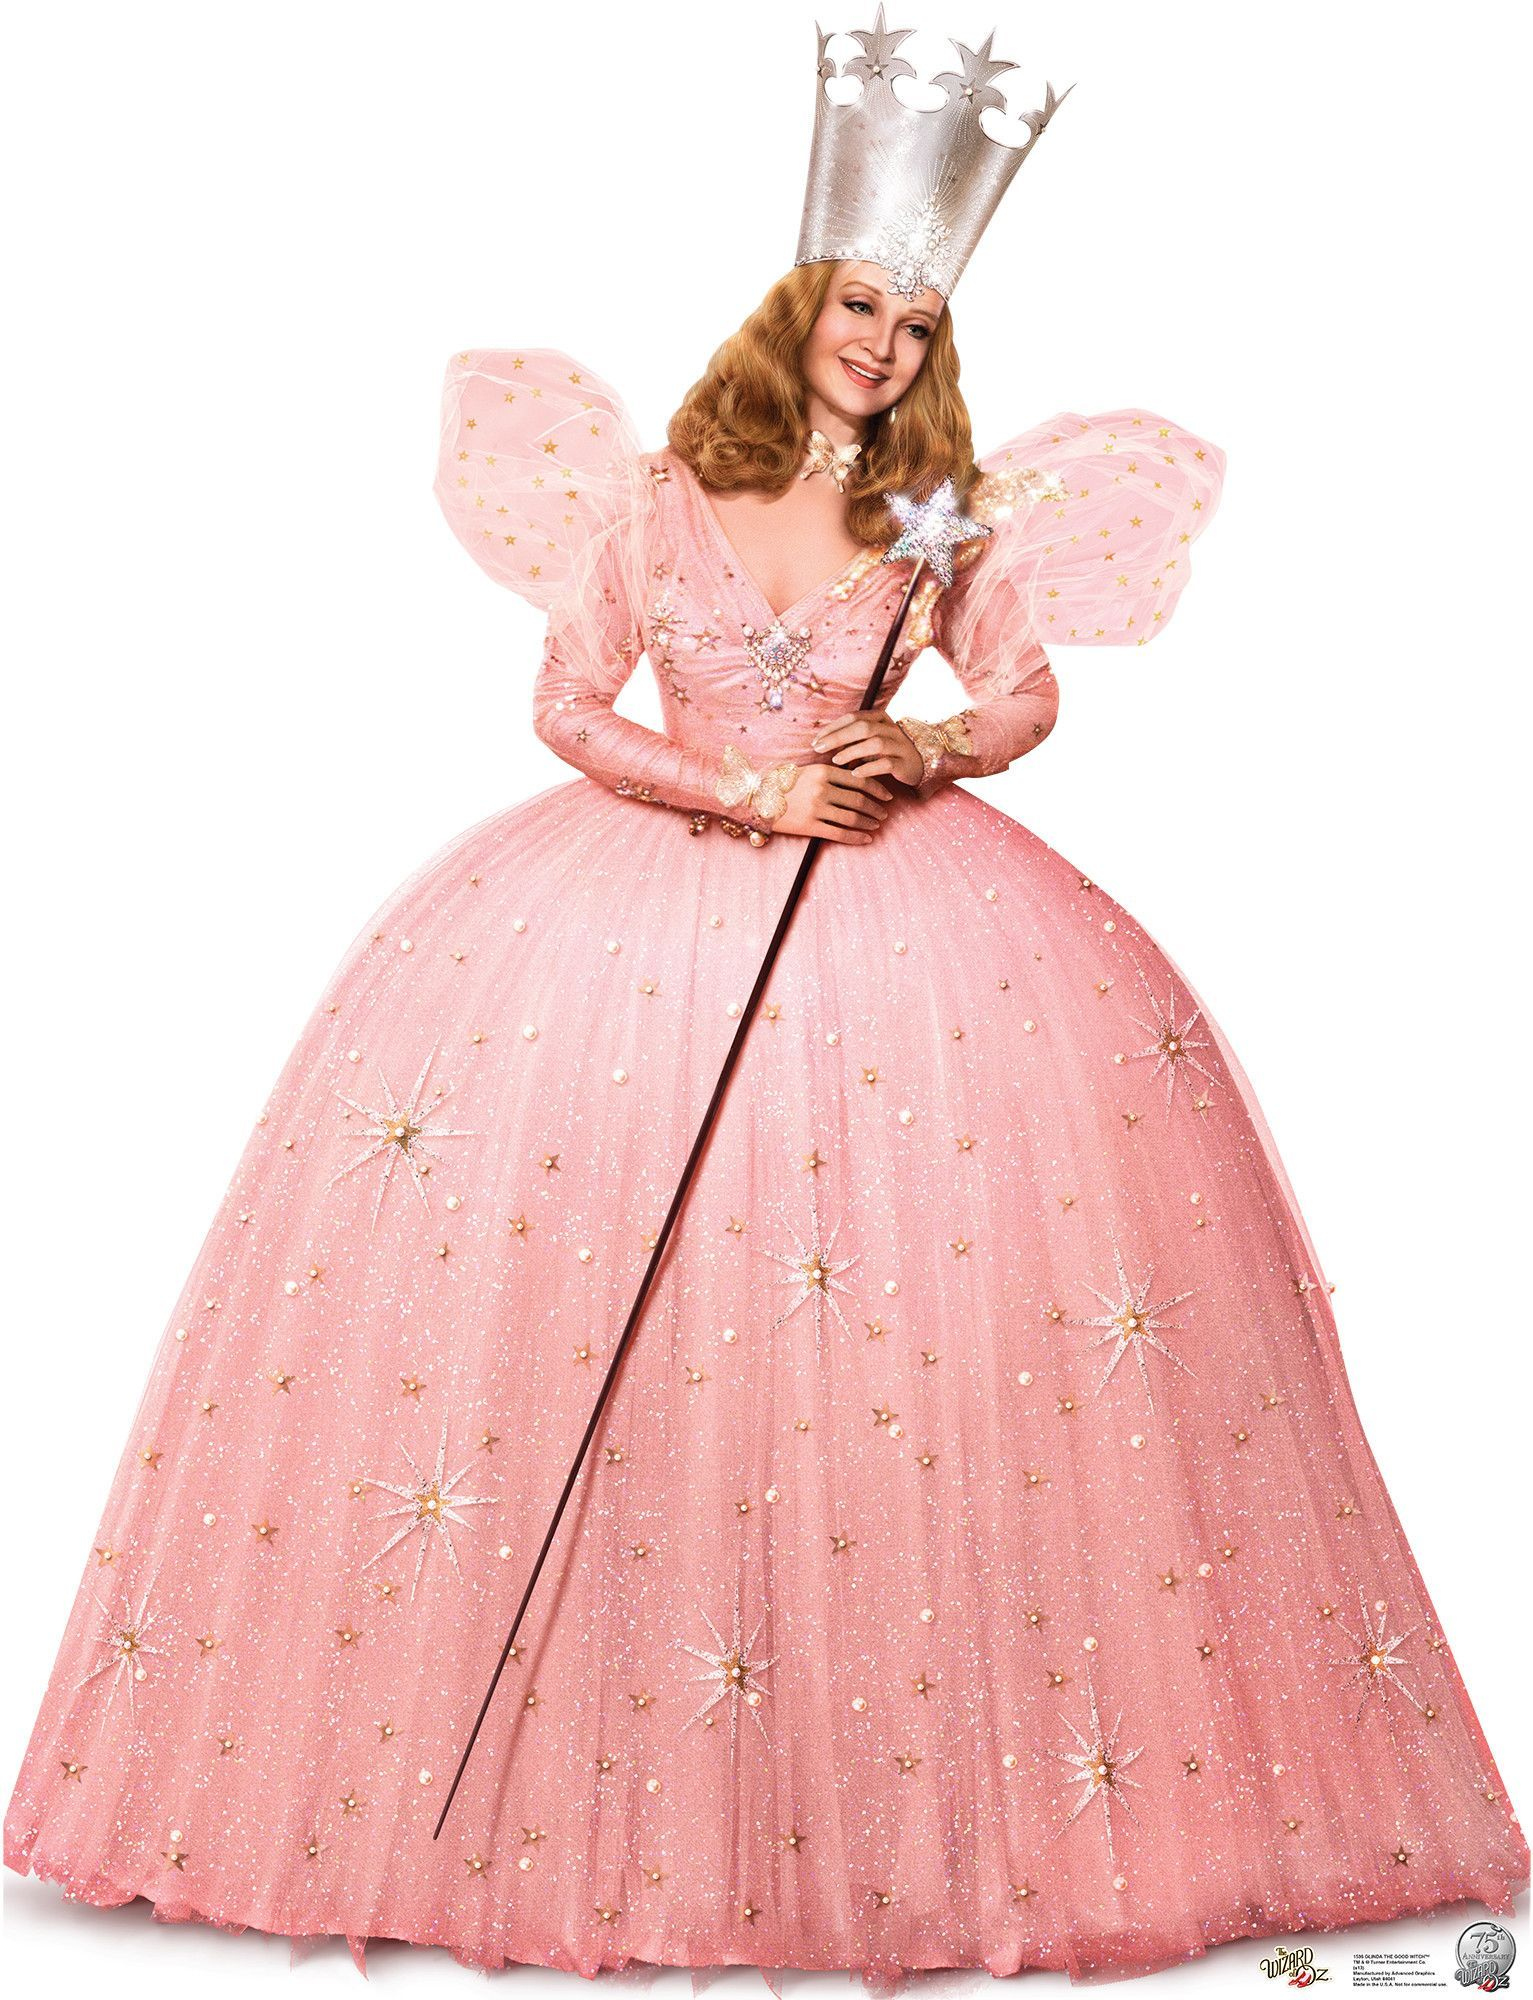 Glinda the Good Witch - 75 yr Anniversary OZ Cardboard Stand-Up ...